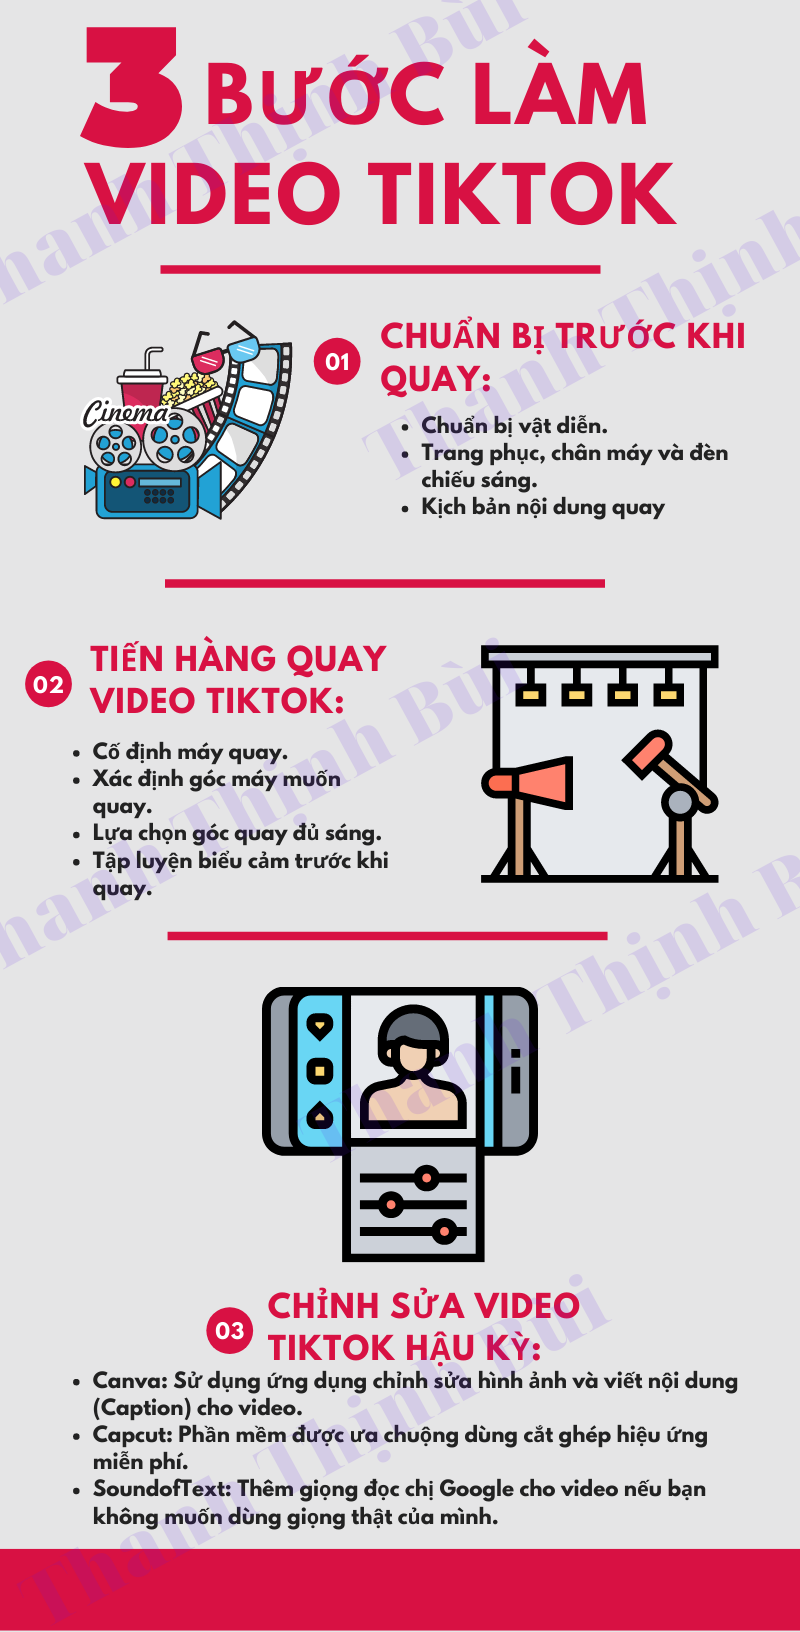 Tiktok-marketing-video-trieu-view-infographic